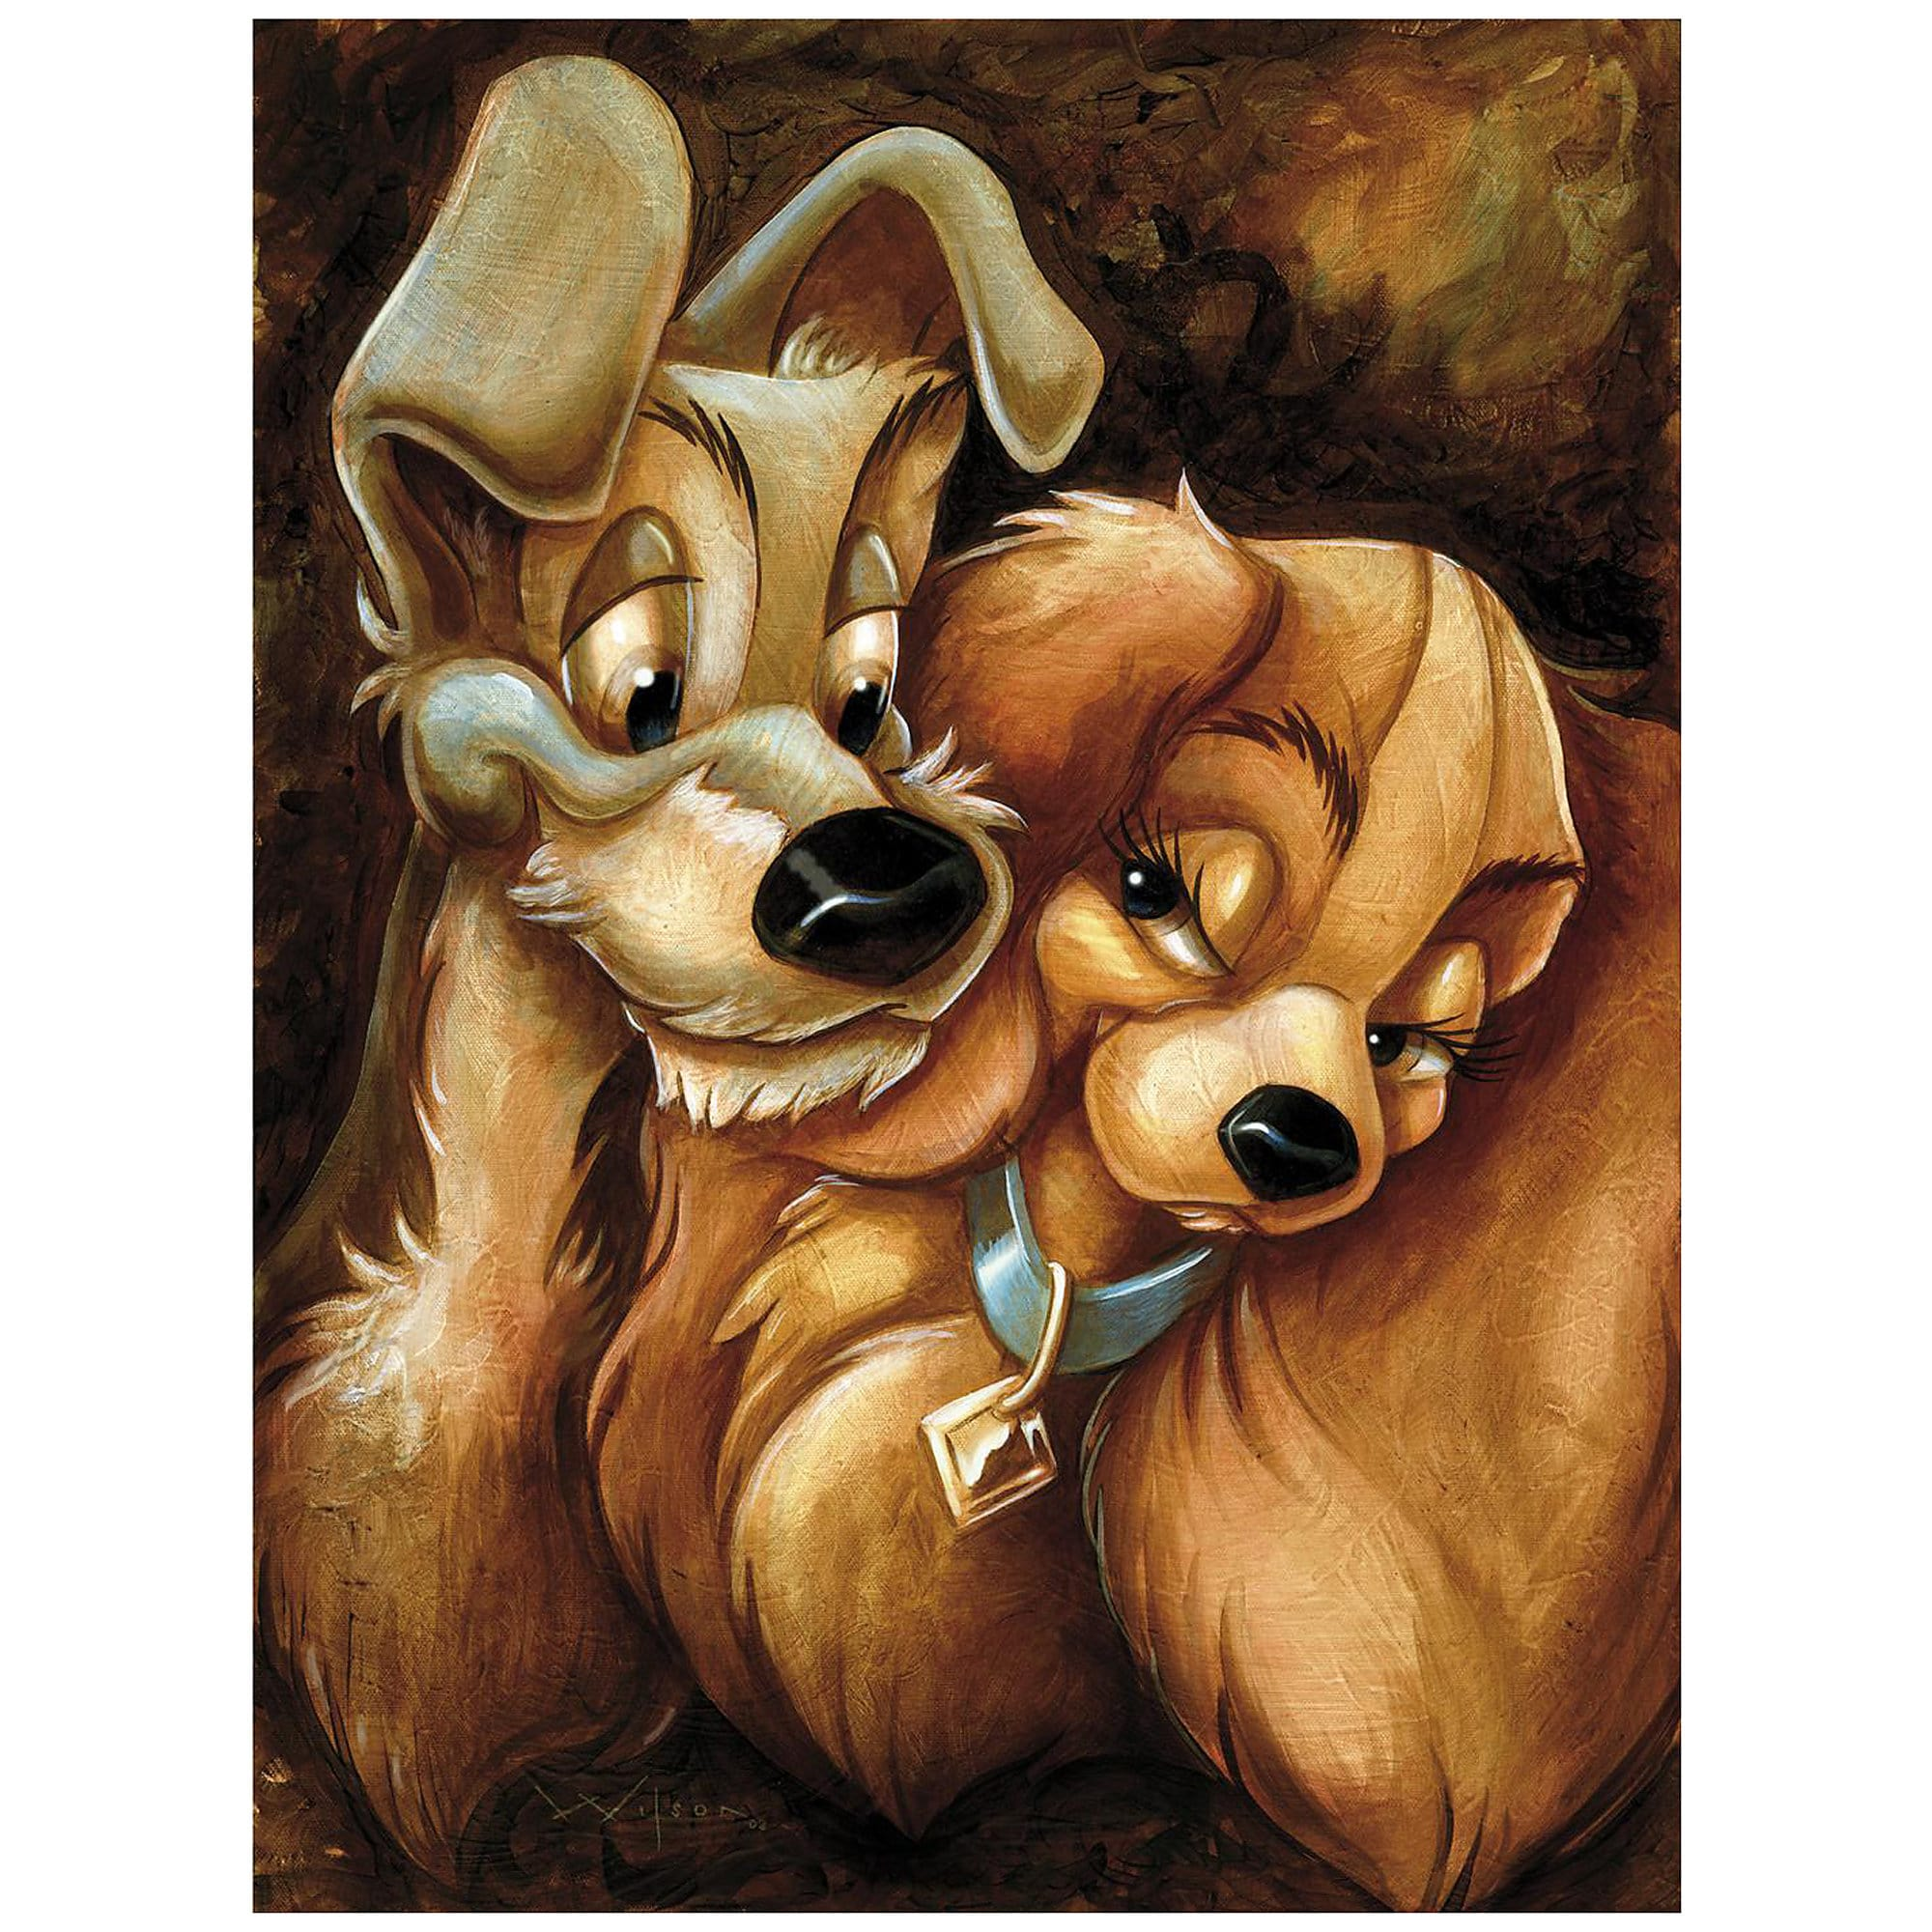 Lady And The Tramp Giclee By Darren Wilson Buy Now Dis Merchandise News